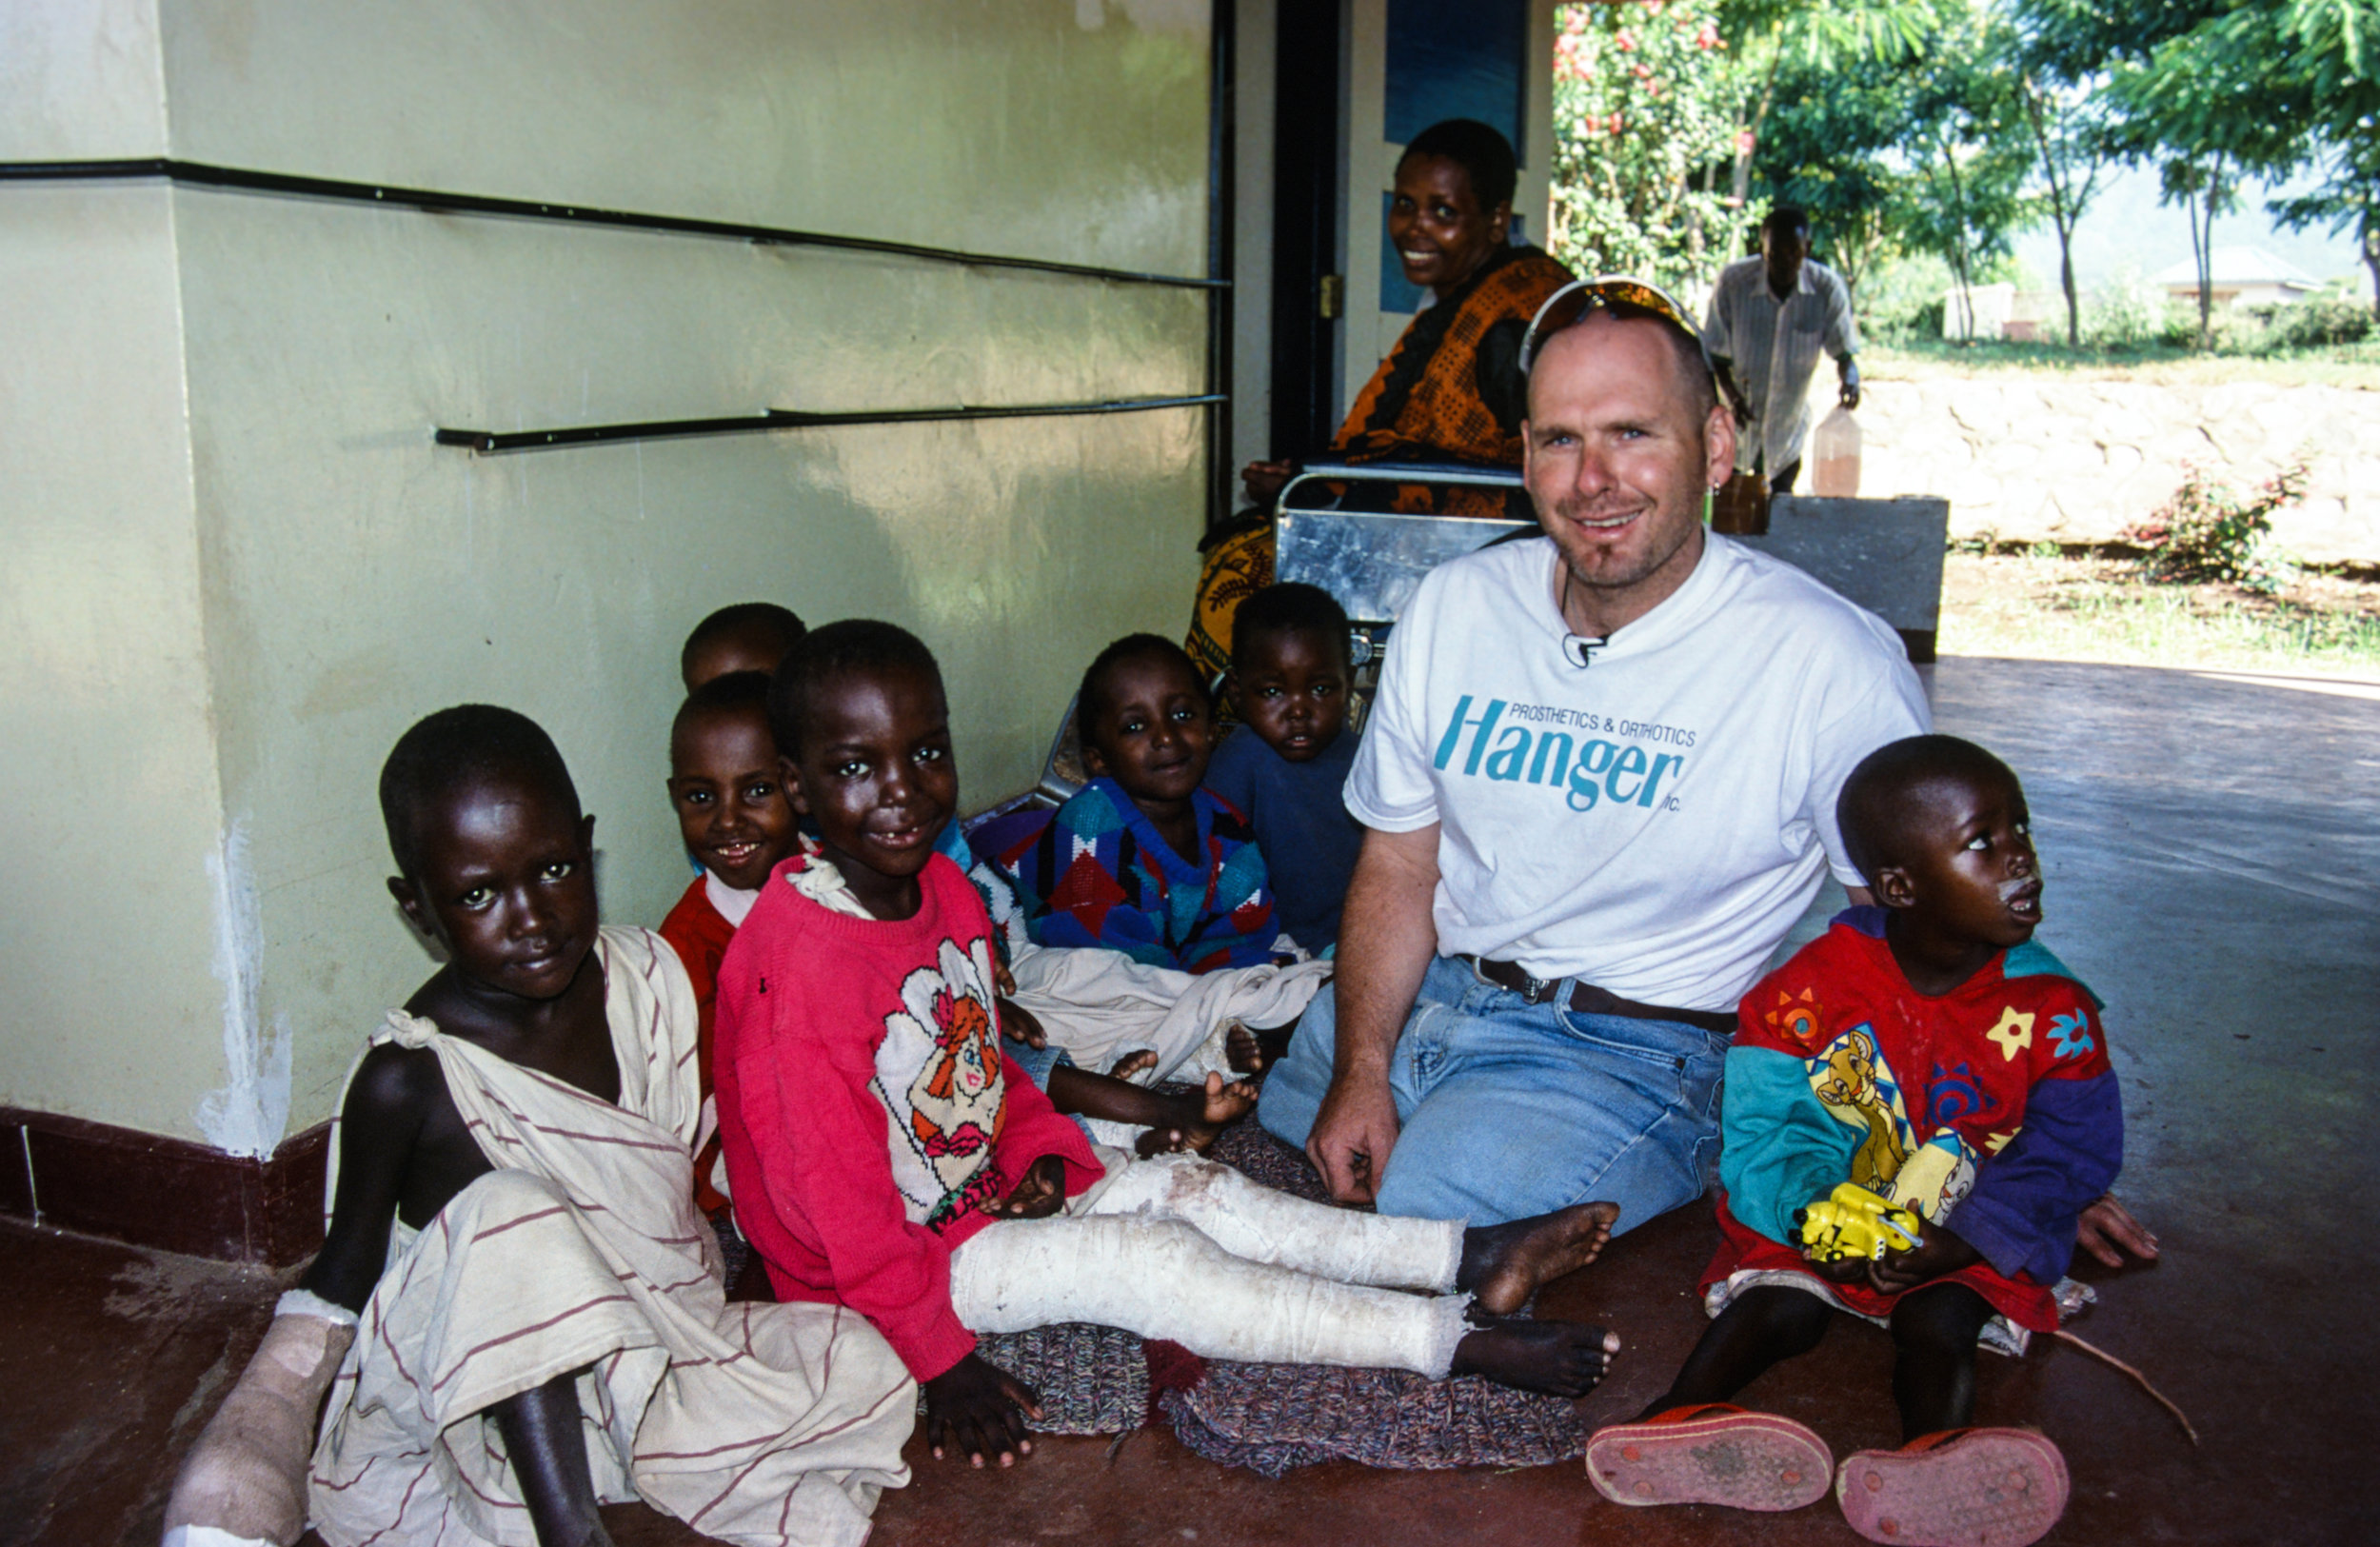 Visiting these kids at the Selian Lutheran Hospital in Arusha was one of the highlights of the Kilimanjaro expedition for Warren.